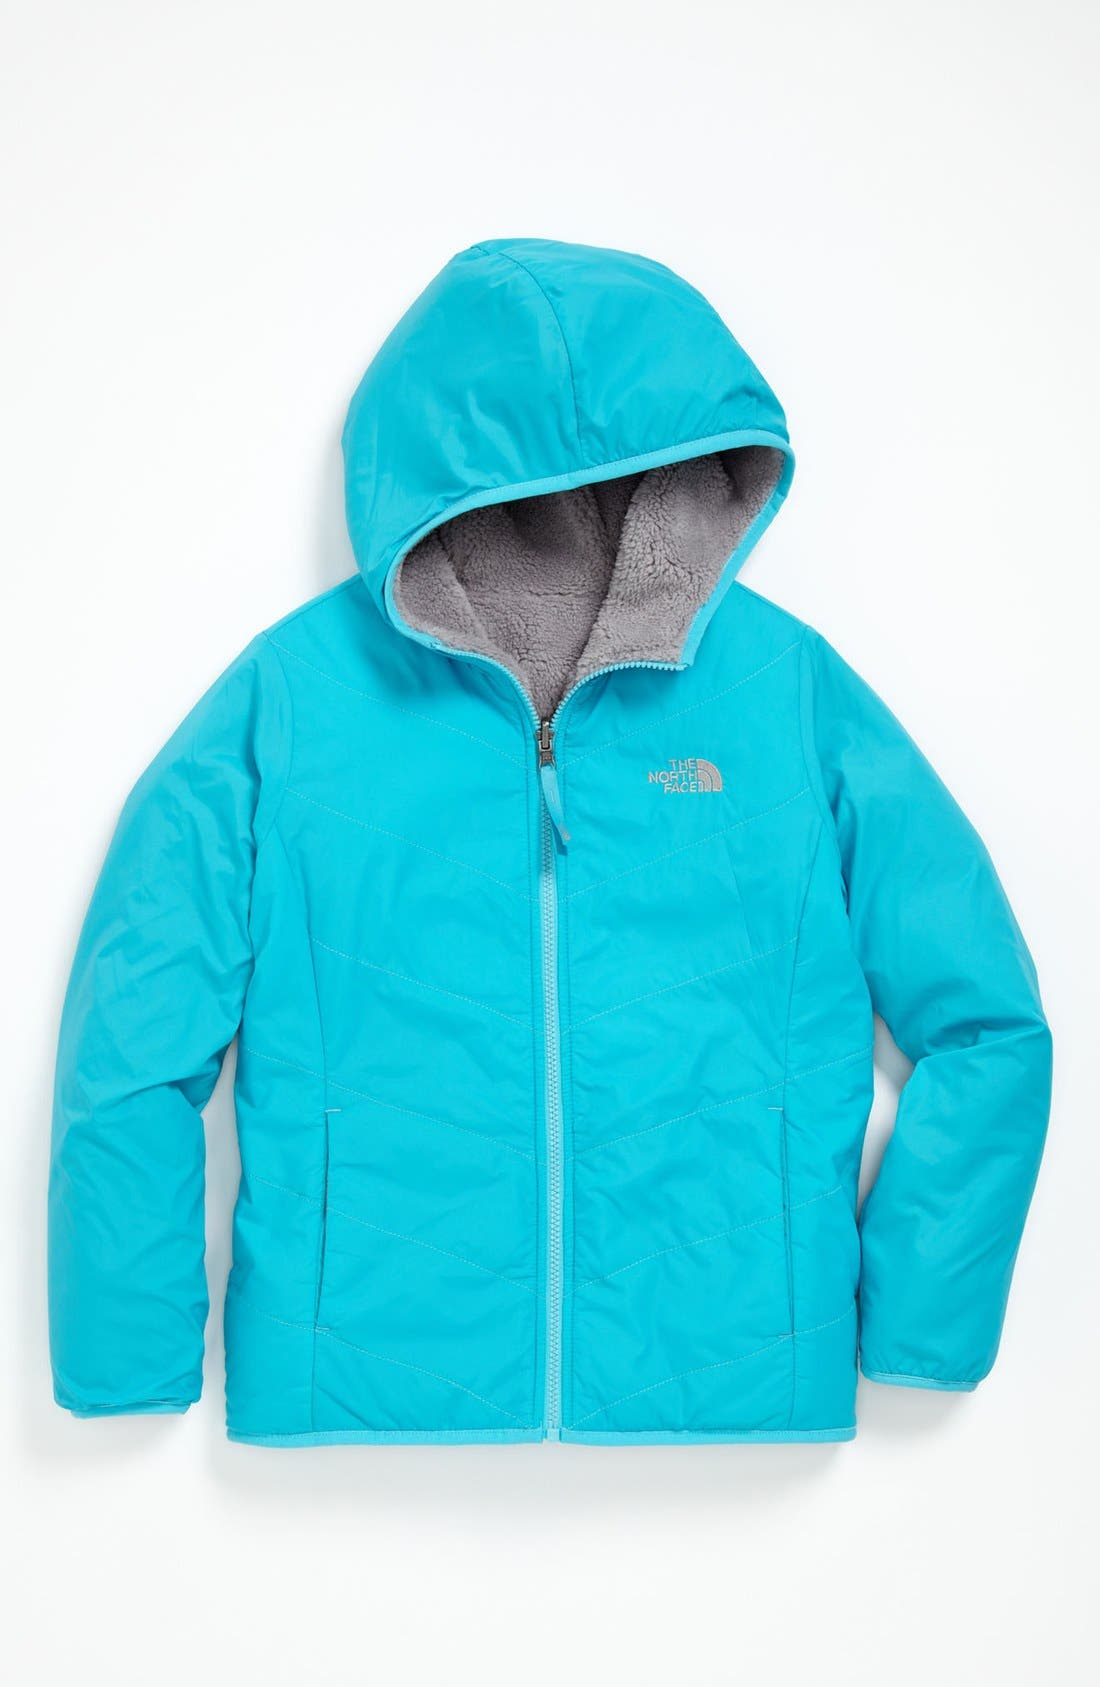 Main Image - The North Face 'Perseus' Reversible Jacket (Little Girls & Big Girls)